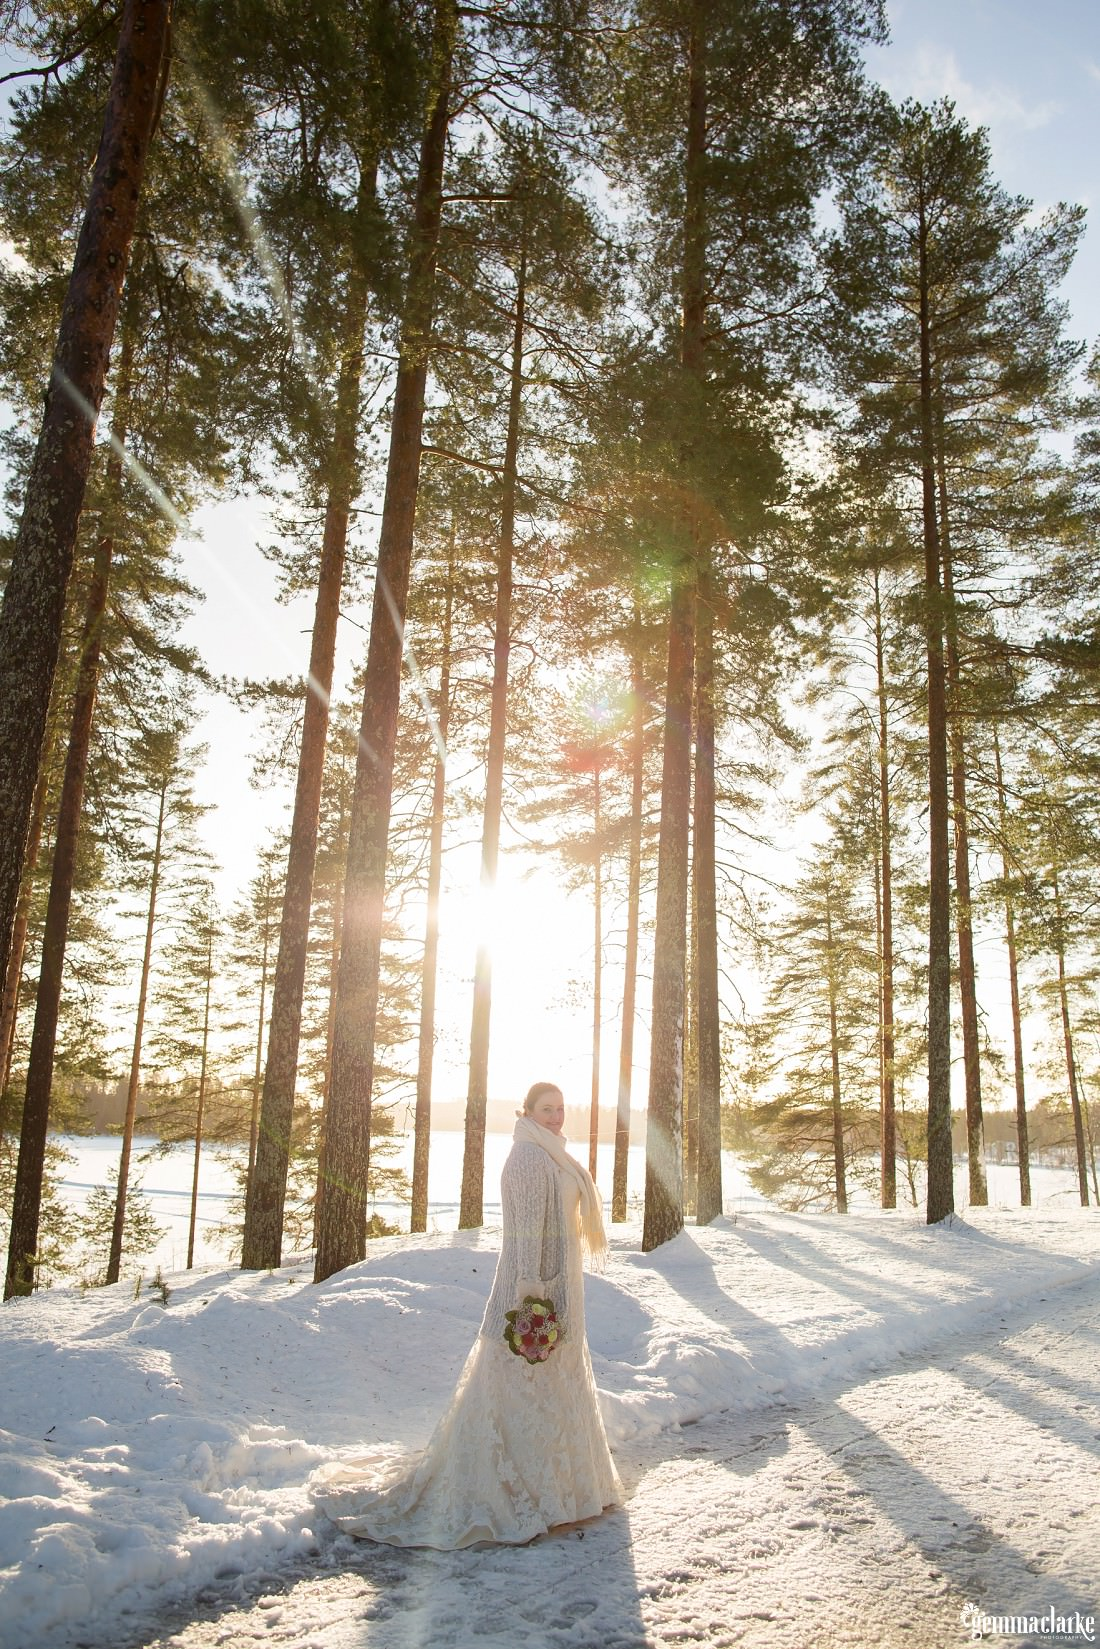 A bride in a white gown with scarf and mittens stands in the snow holding a floral bouquet as sunlight streams through the trees behind her